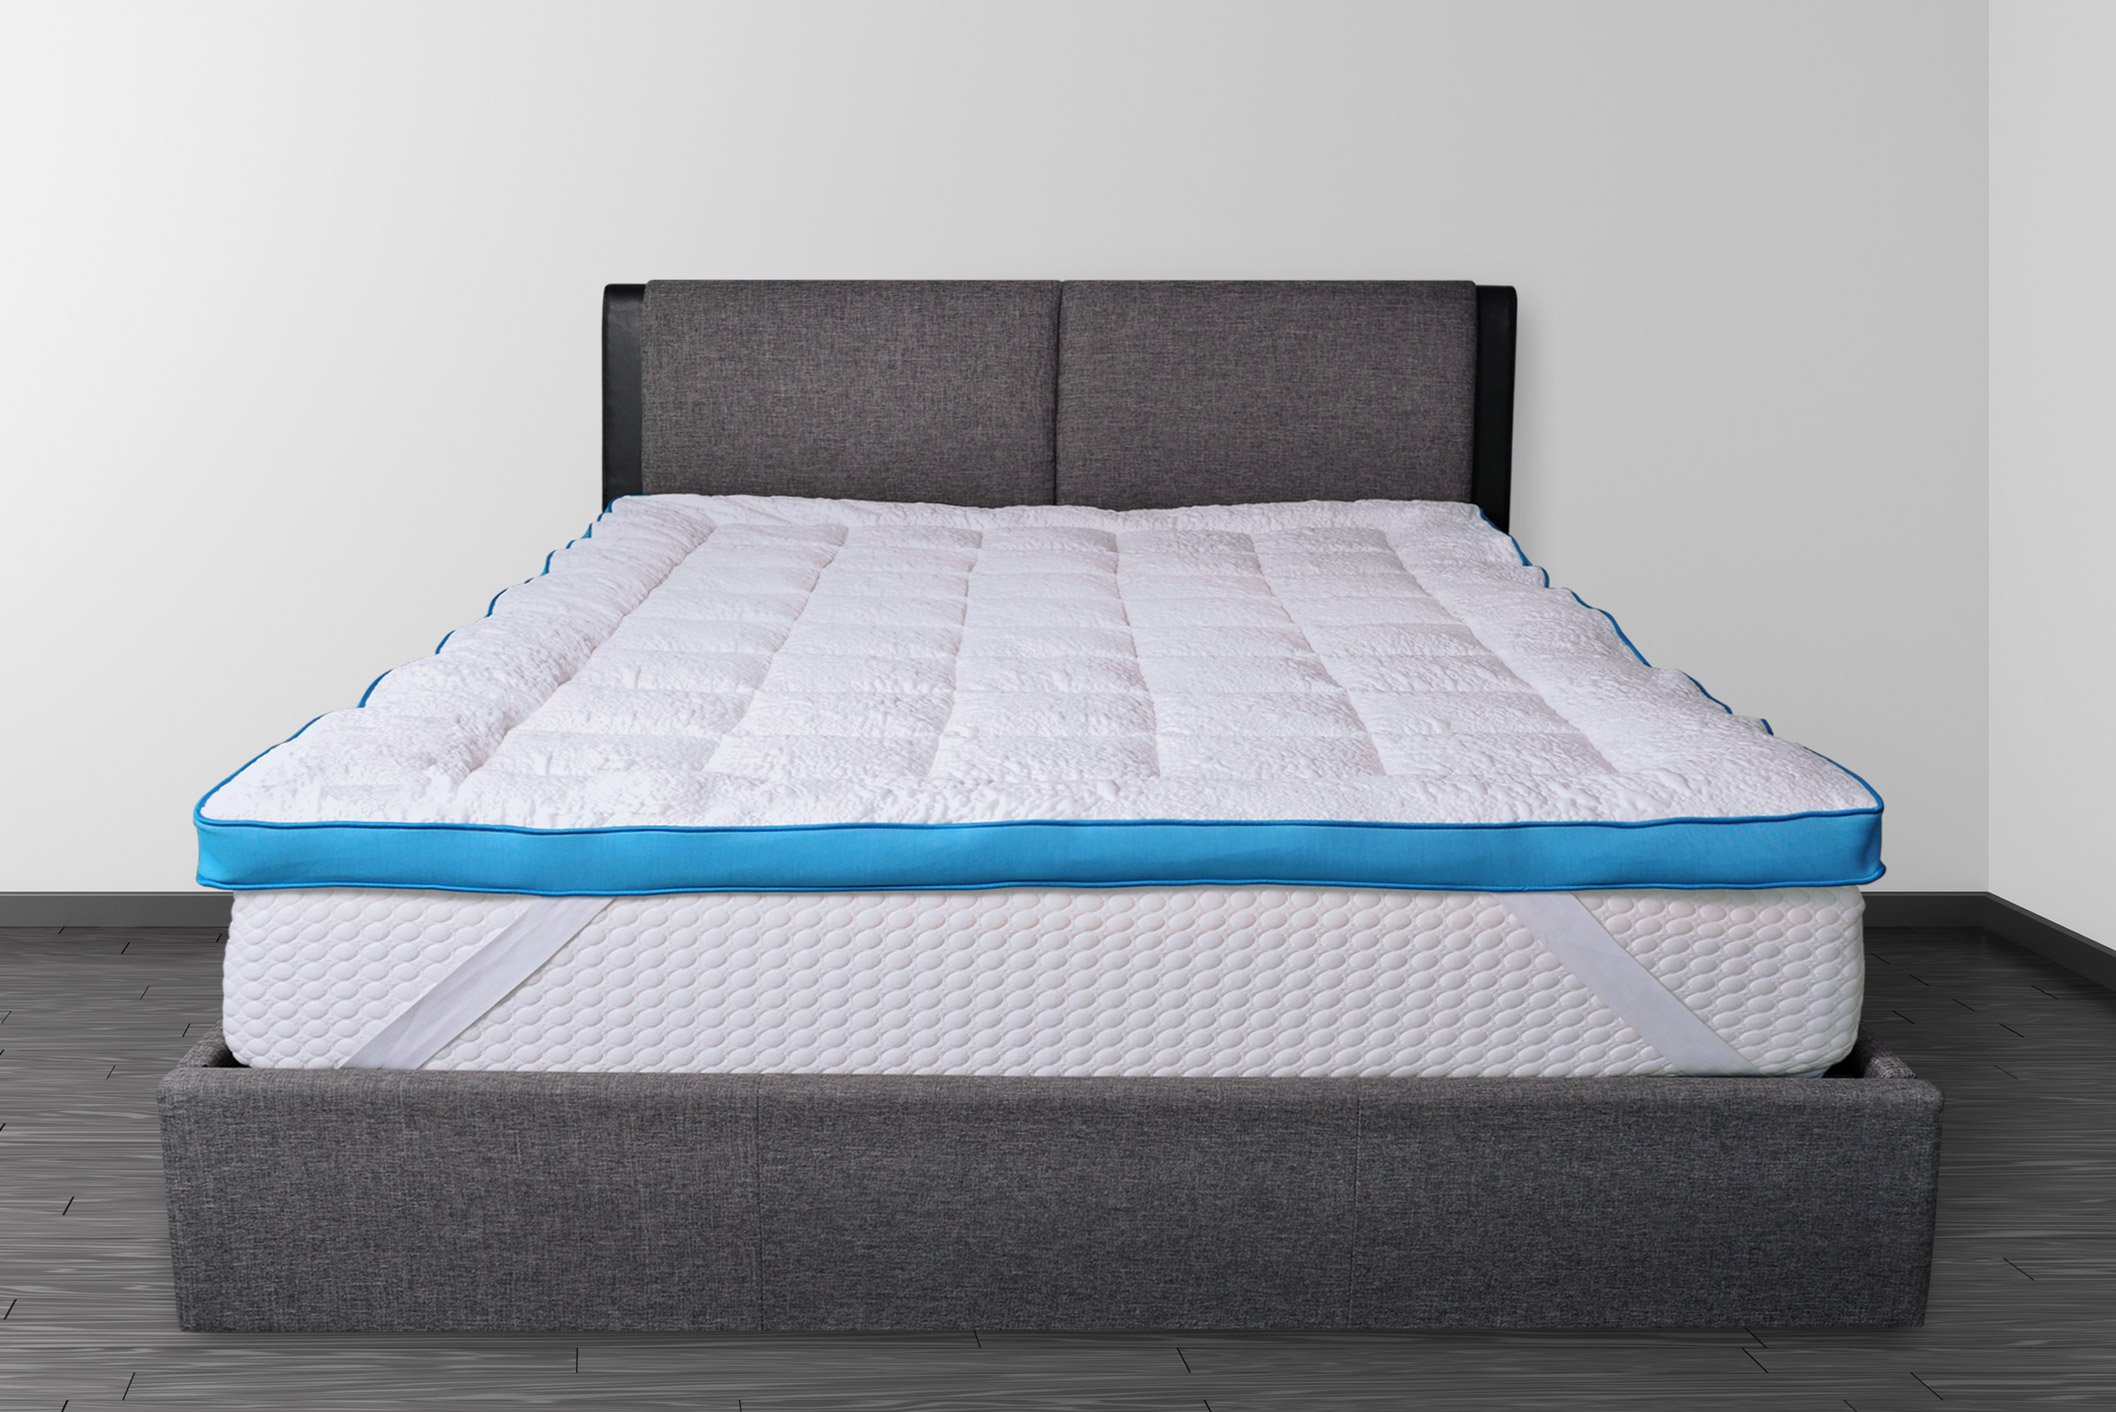 Cooling Mattress Topper - Anti-Allergy - Some like it cool ...